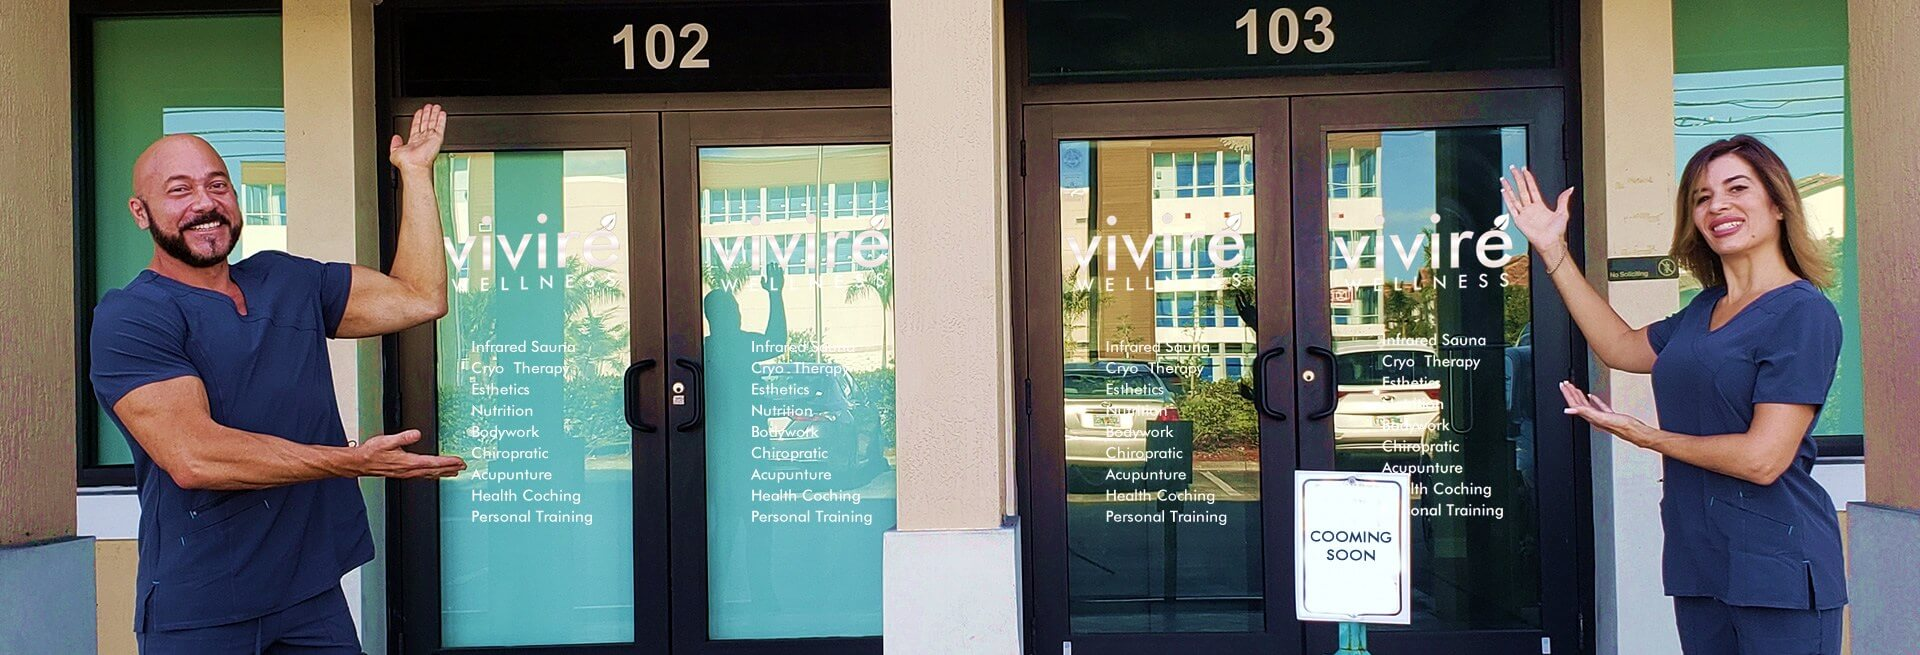 geo and evelyn vivire wellness